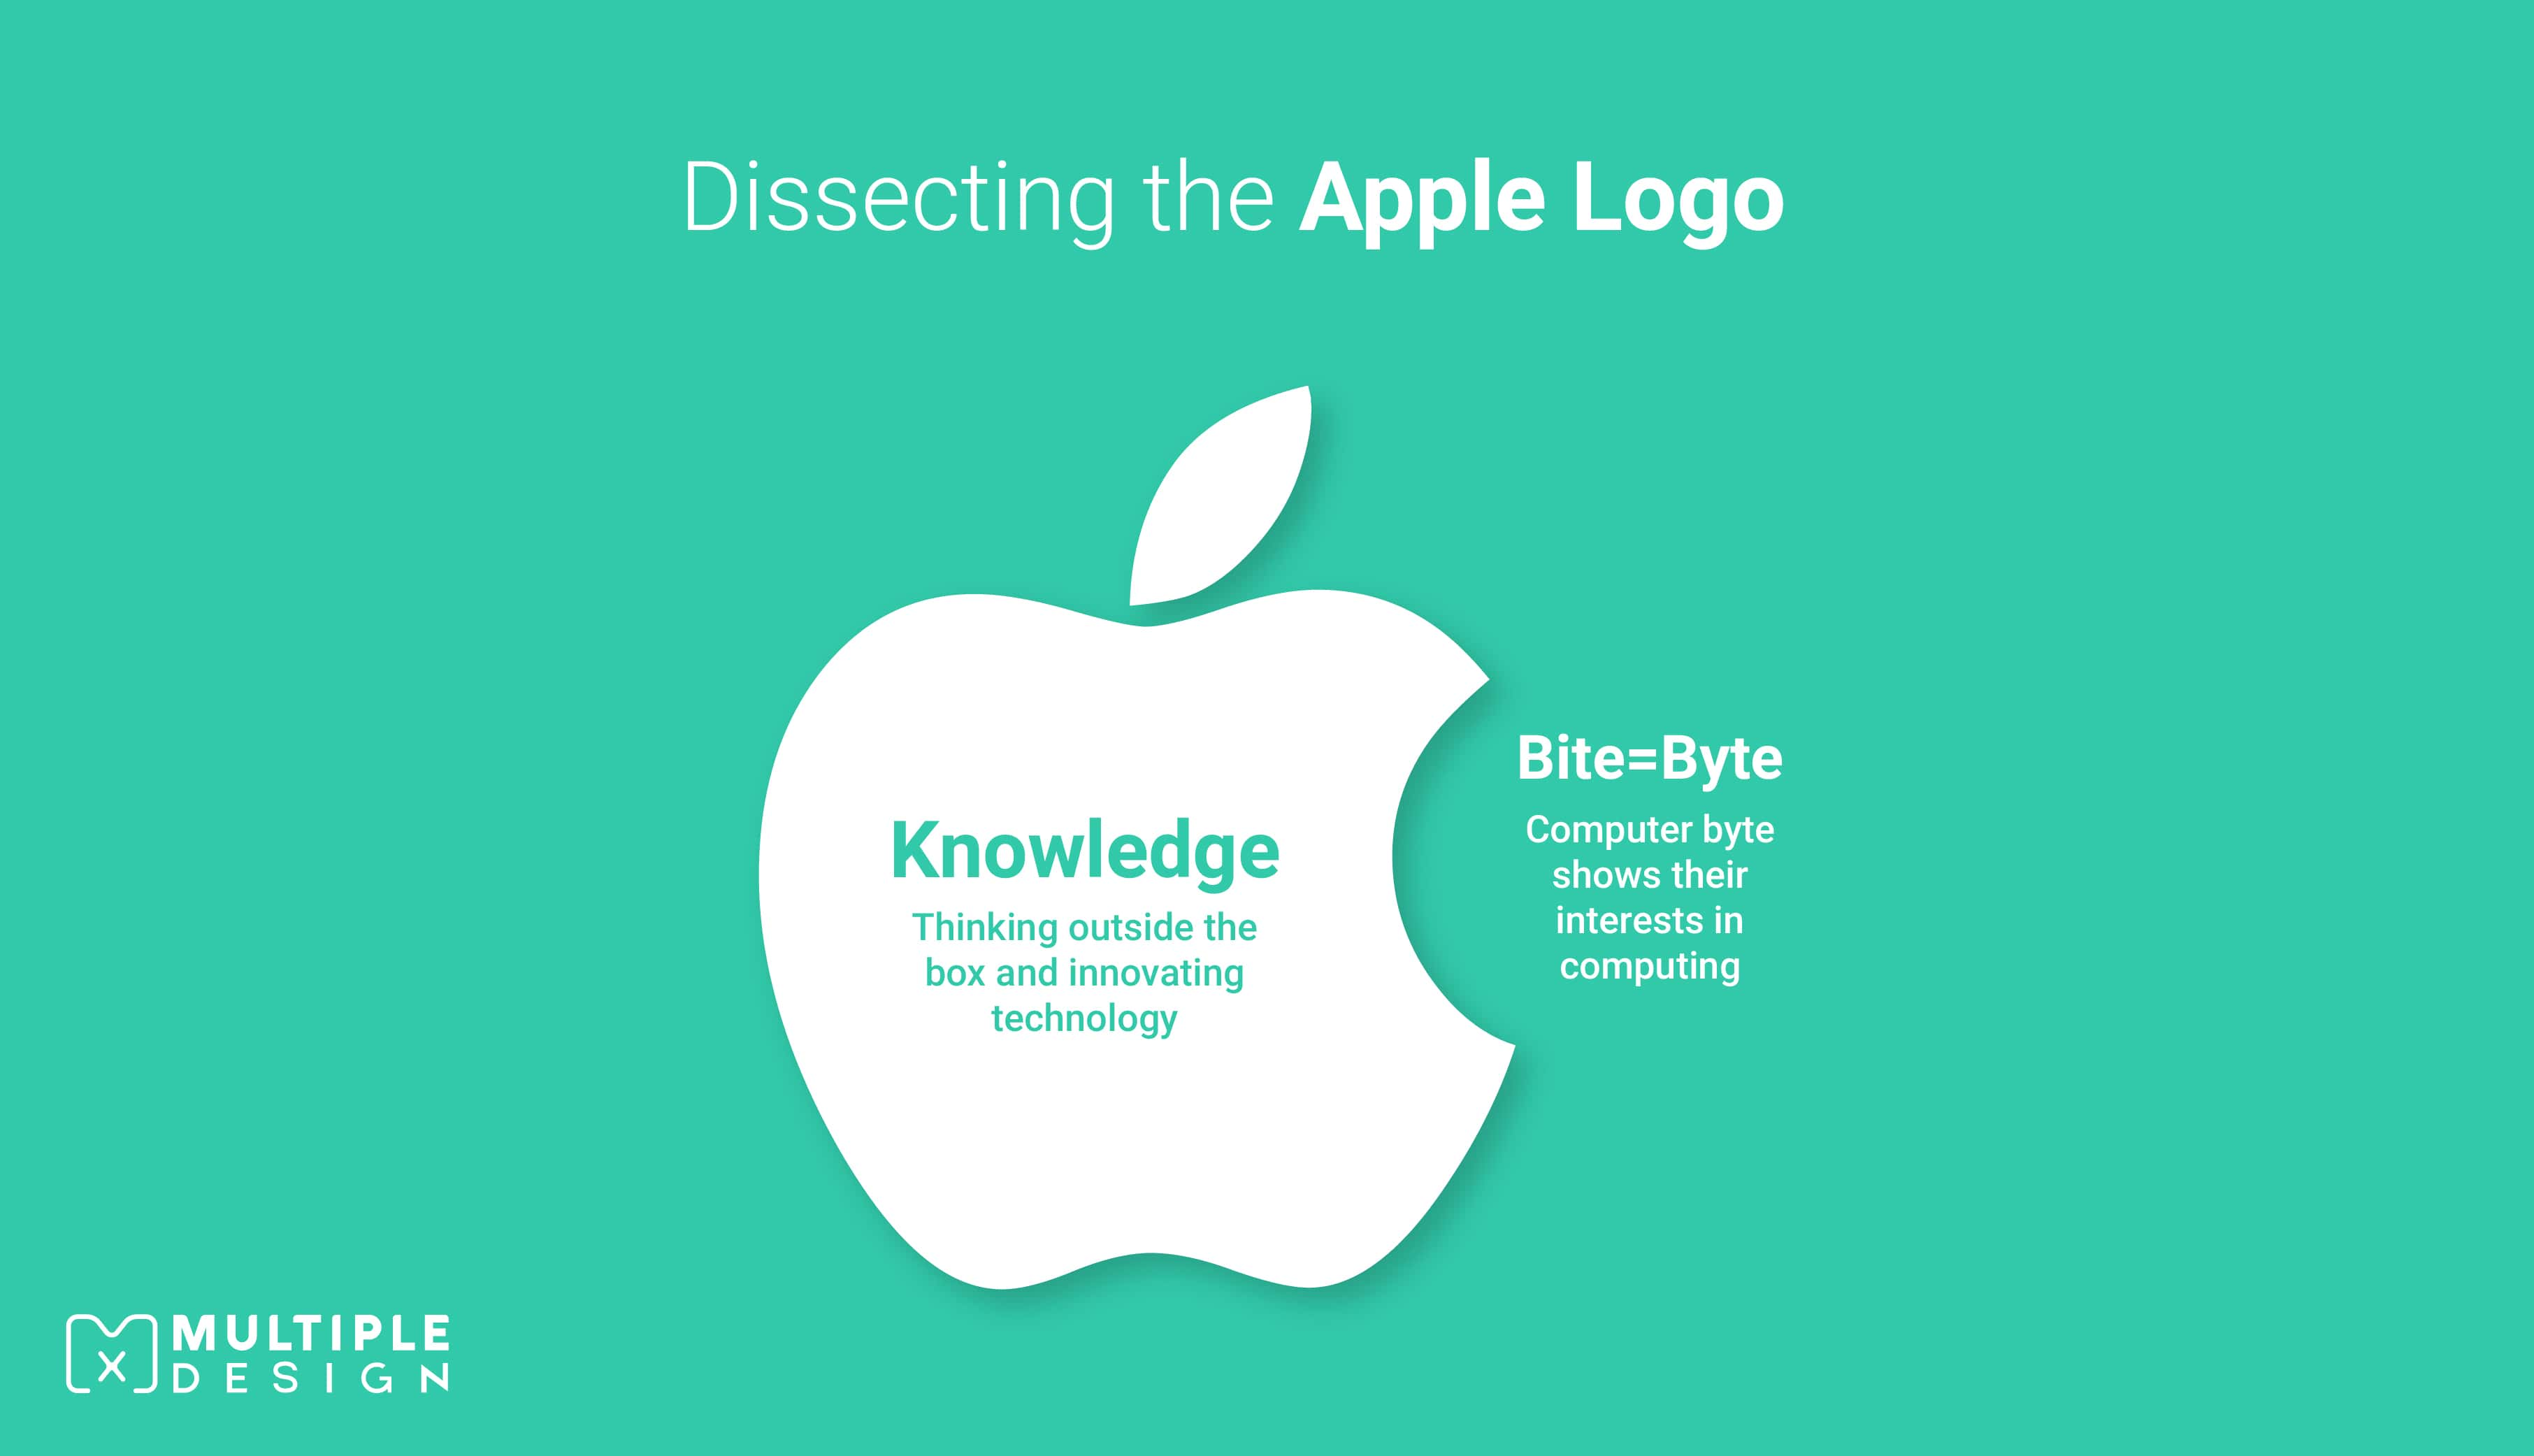 Dissecting the Apple Logo - Knowledge and Bytes